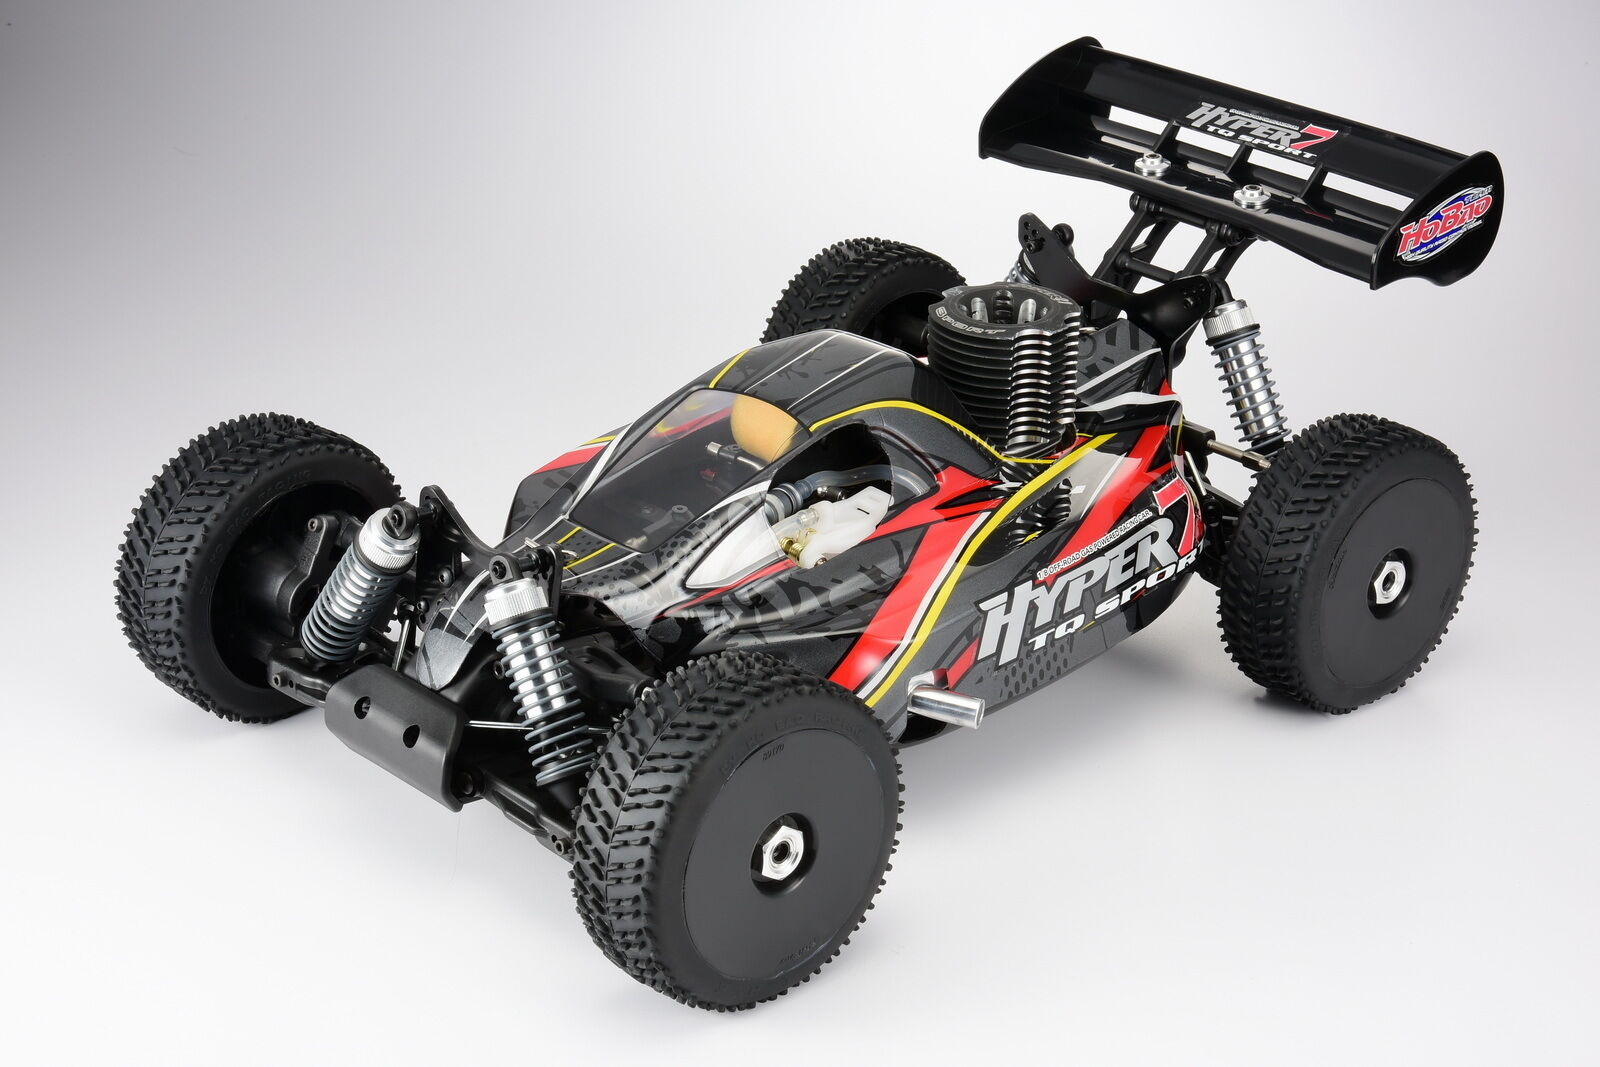 NEW HOBAO HYPER 7 TQ  NITRO RTR CAR -  NEW grigio BODY (LLJSTORE) US SELLER